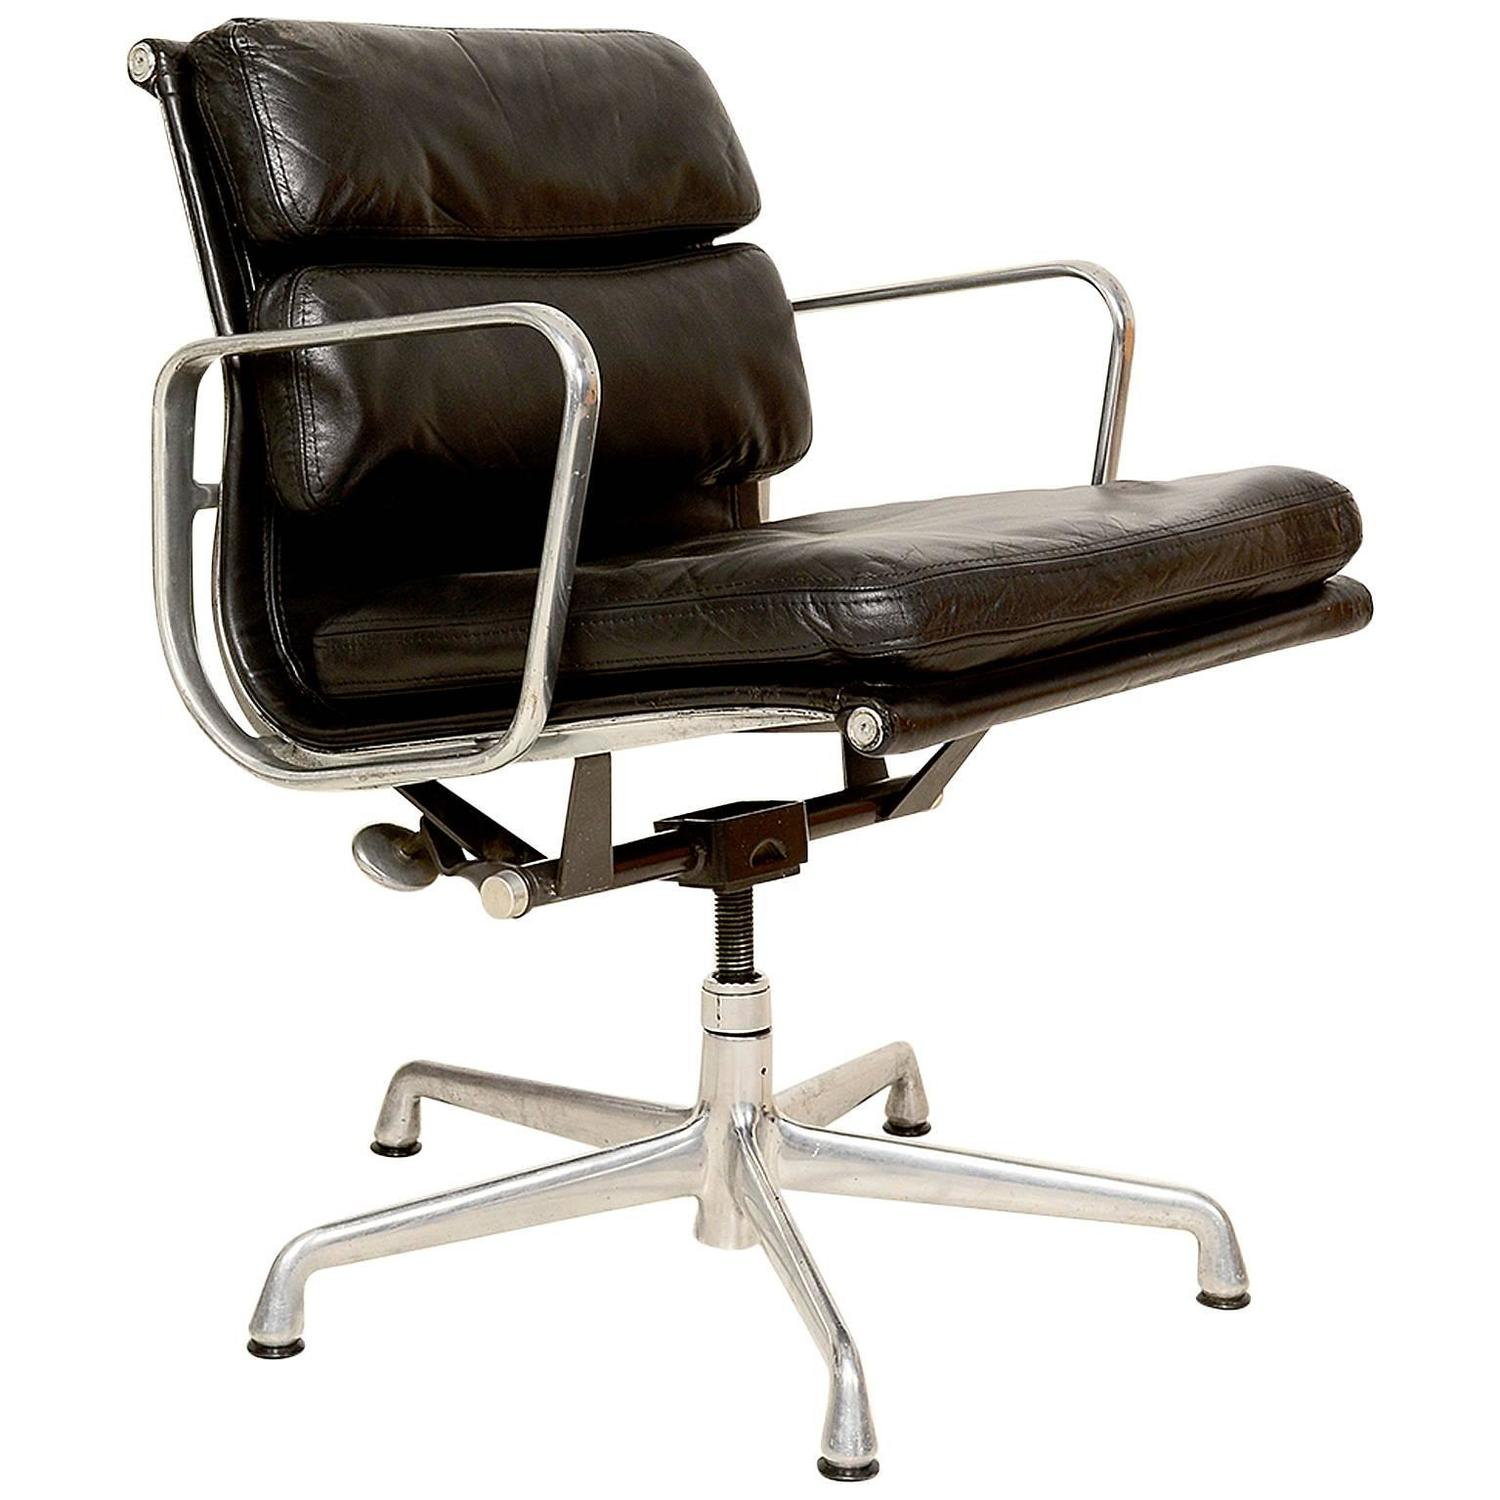 Herman miller chair - Mid Century Modern Herman Miller Eames Soft Pad Aluminum Group Chair For Sale At 1stdibs